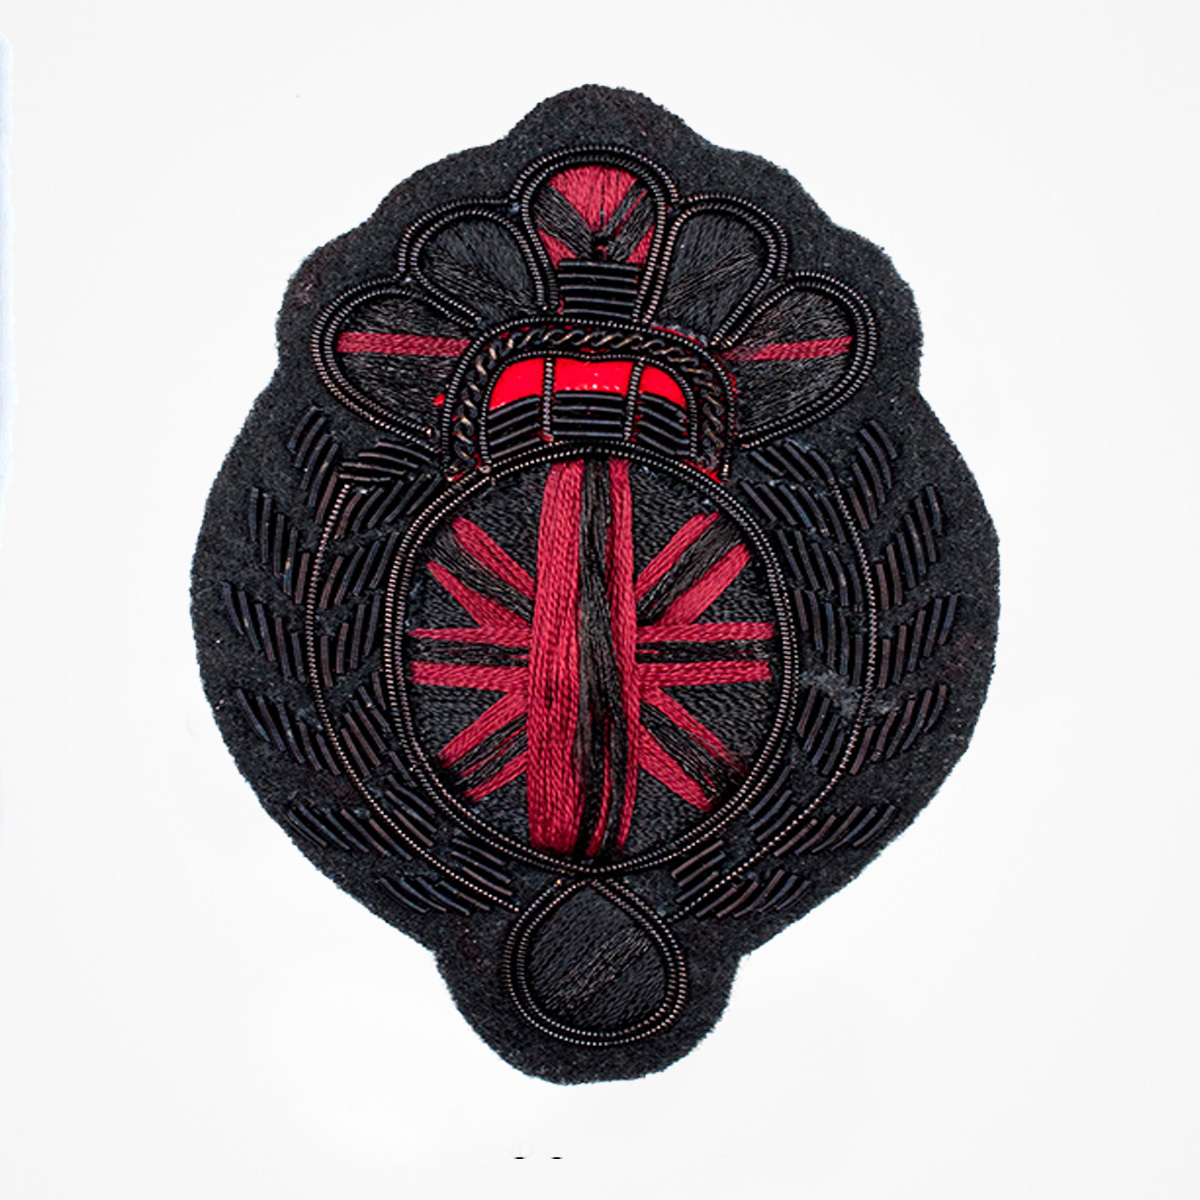 Qg - 3538 - Fashionable 3D embroidered look Made by skilled artisans Bullion wire and silk thread hand Stitched on Black color Felt Available in gold and silver colors Size = 90 mm height 63 mm width sewon backing: Perfect for caps, sports jacket, leather jackets, blazer coat, Blazer Pocket, shirts uniforms, Accessories and many More Pin backing: easy to removable 5